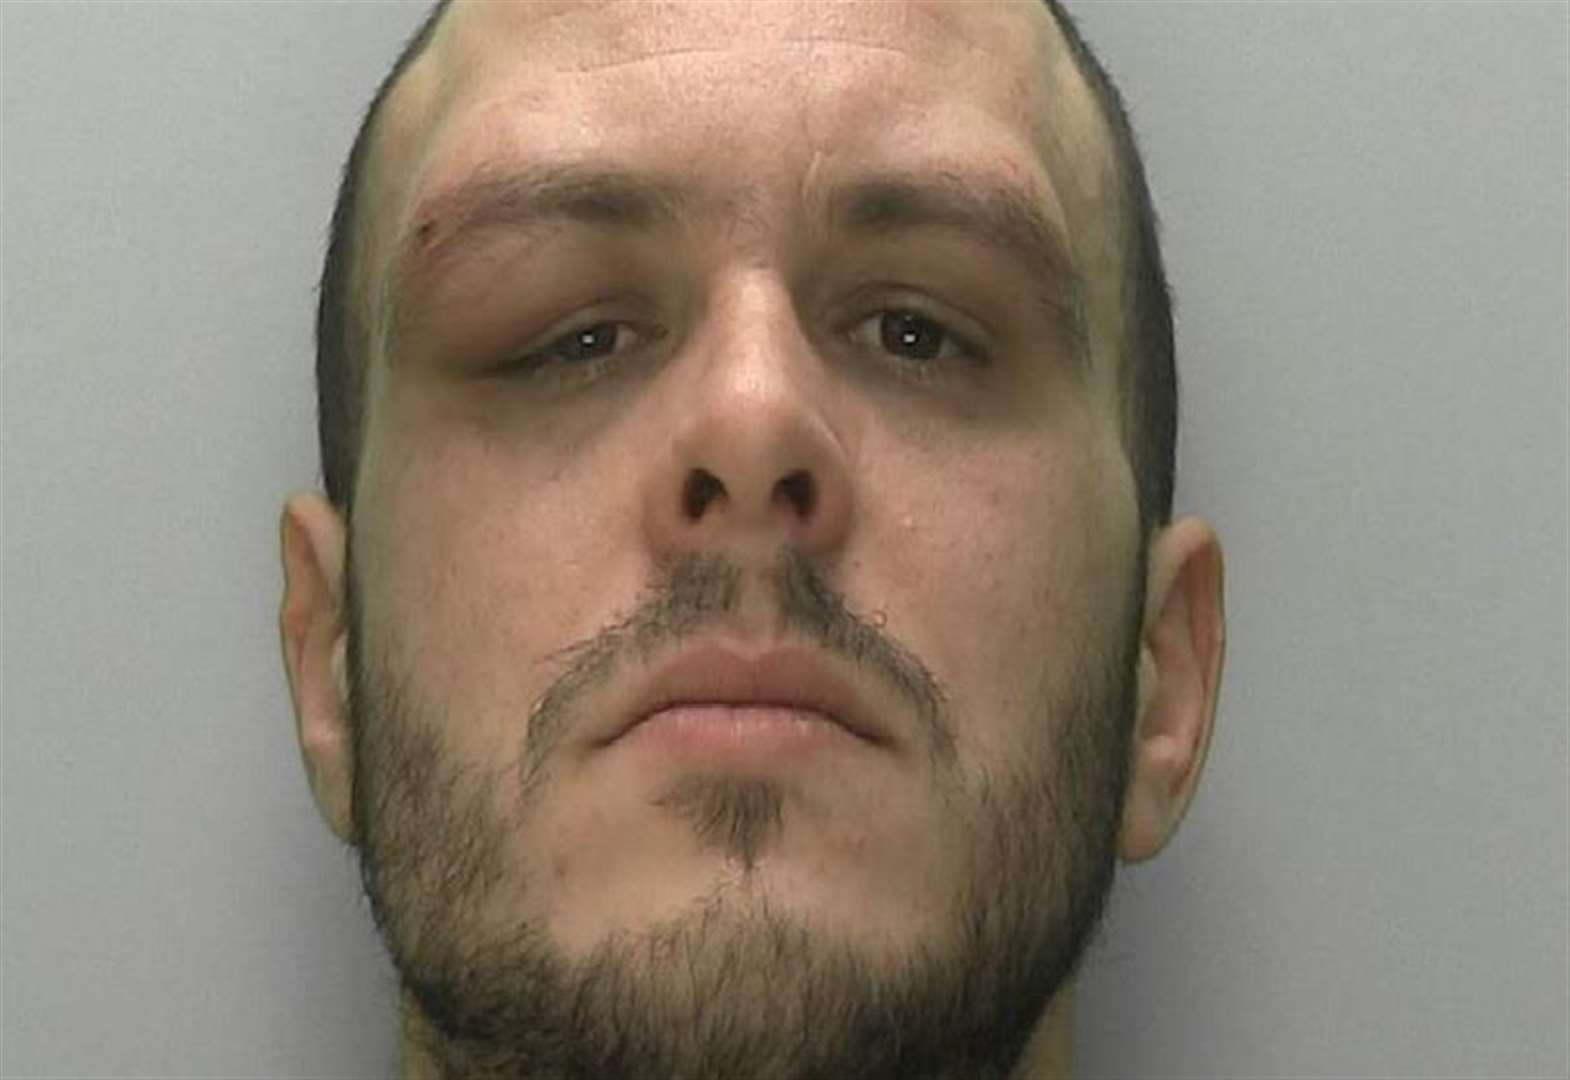 Burglar jailed after stealing 'irreplaceable' items